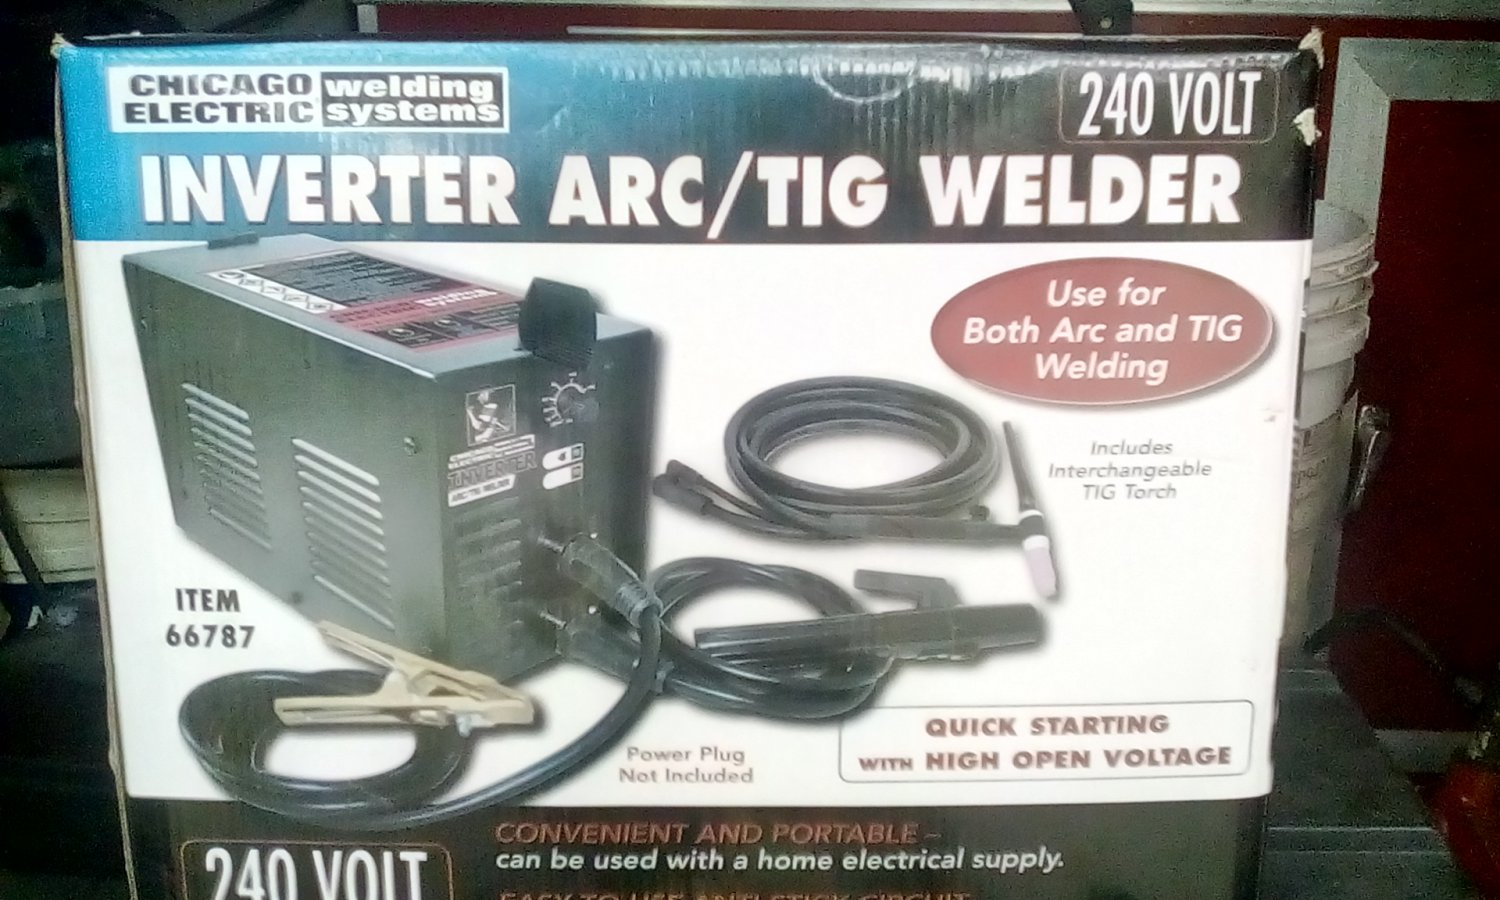 240 Volt Inverter Arc and TIG Welder with Turbo Fan Cooling by Chicago